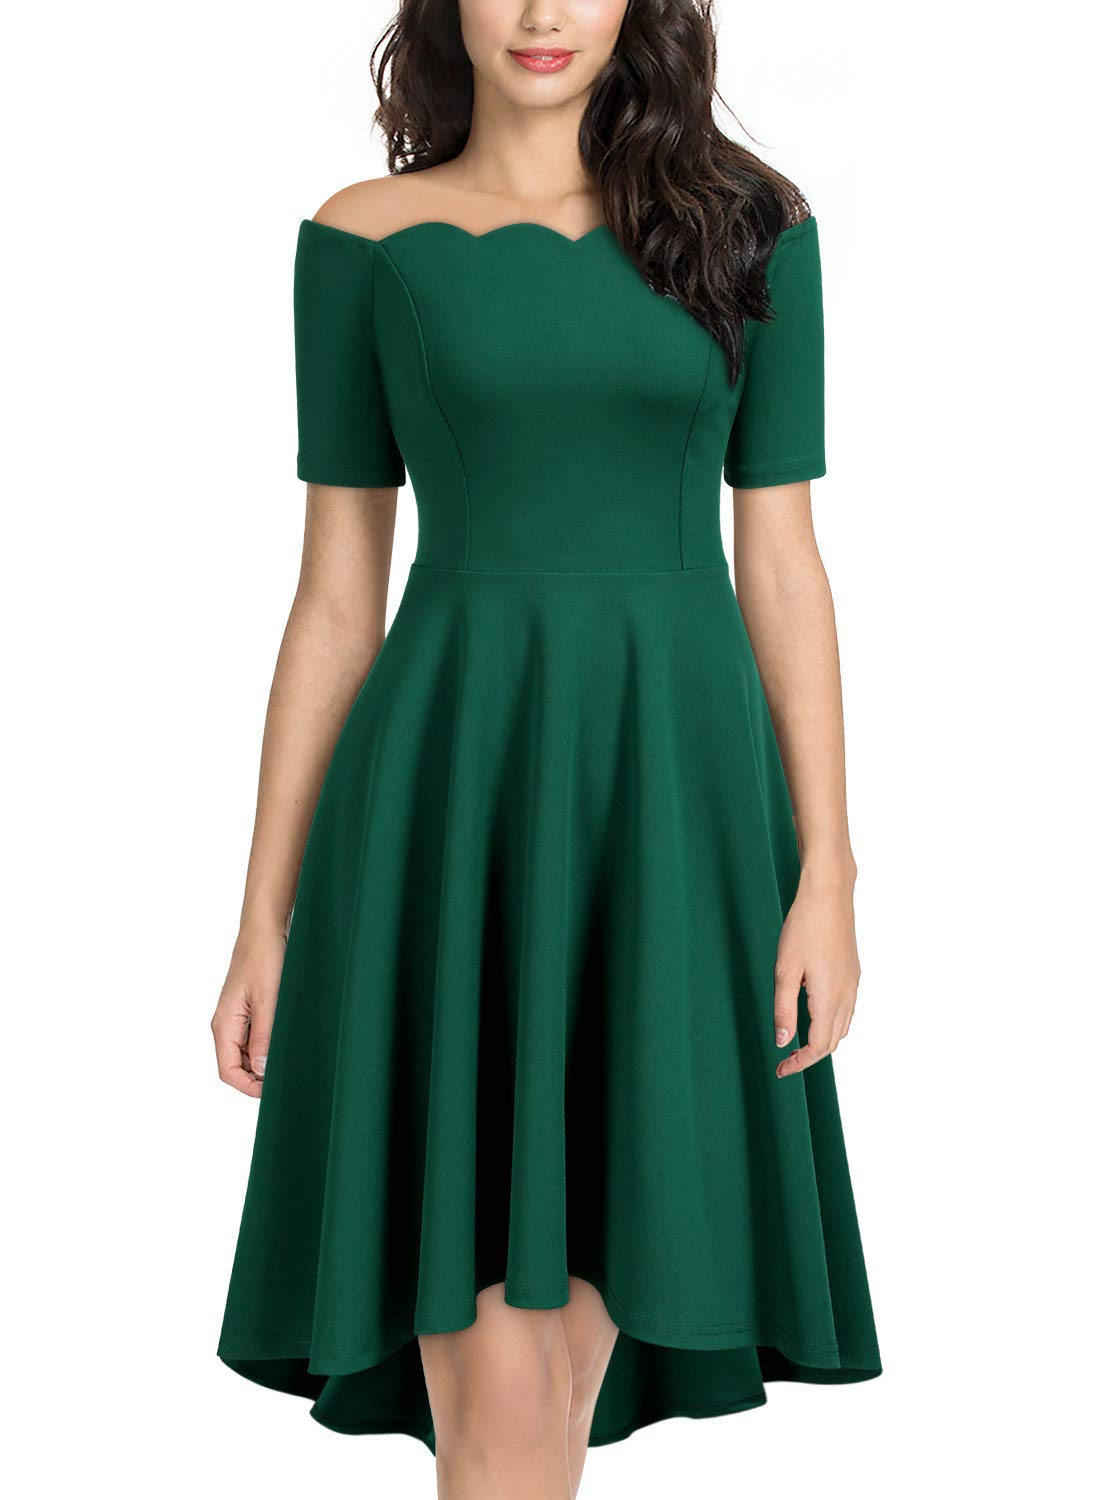 309f9e3748cc Home/Brands/MIUSOL Dresses/Miusol Women's Off Shoulder Vintage Cocktail  Party Swing Dress (X-Large, C-Dark Green). ; 